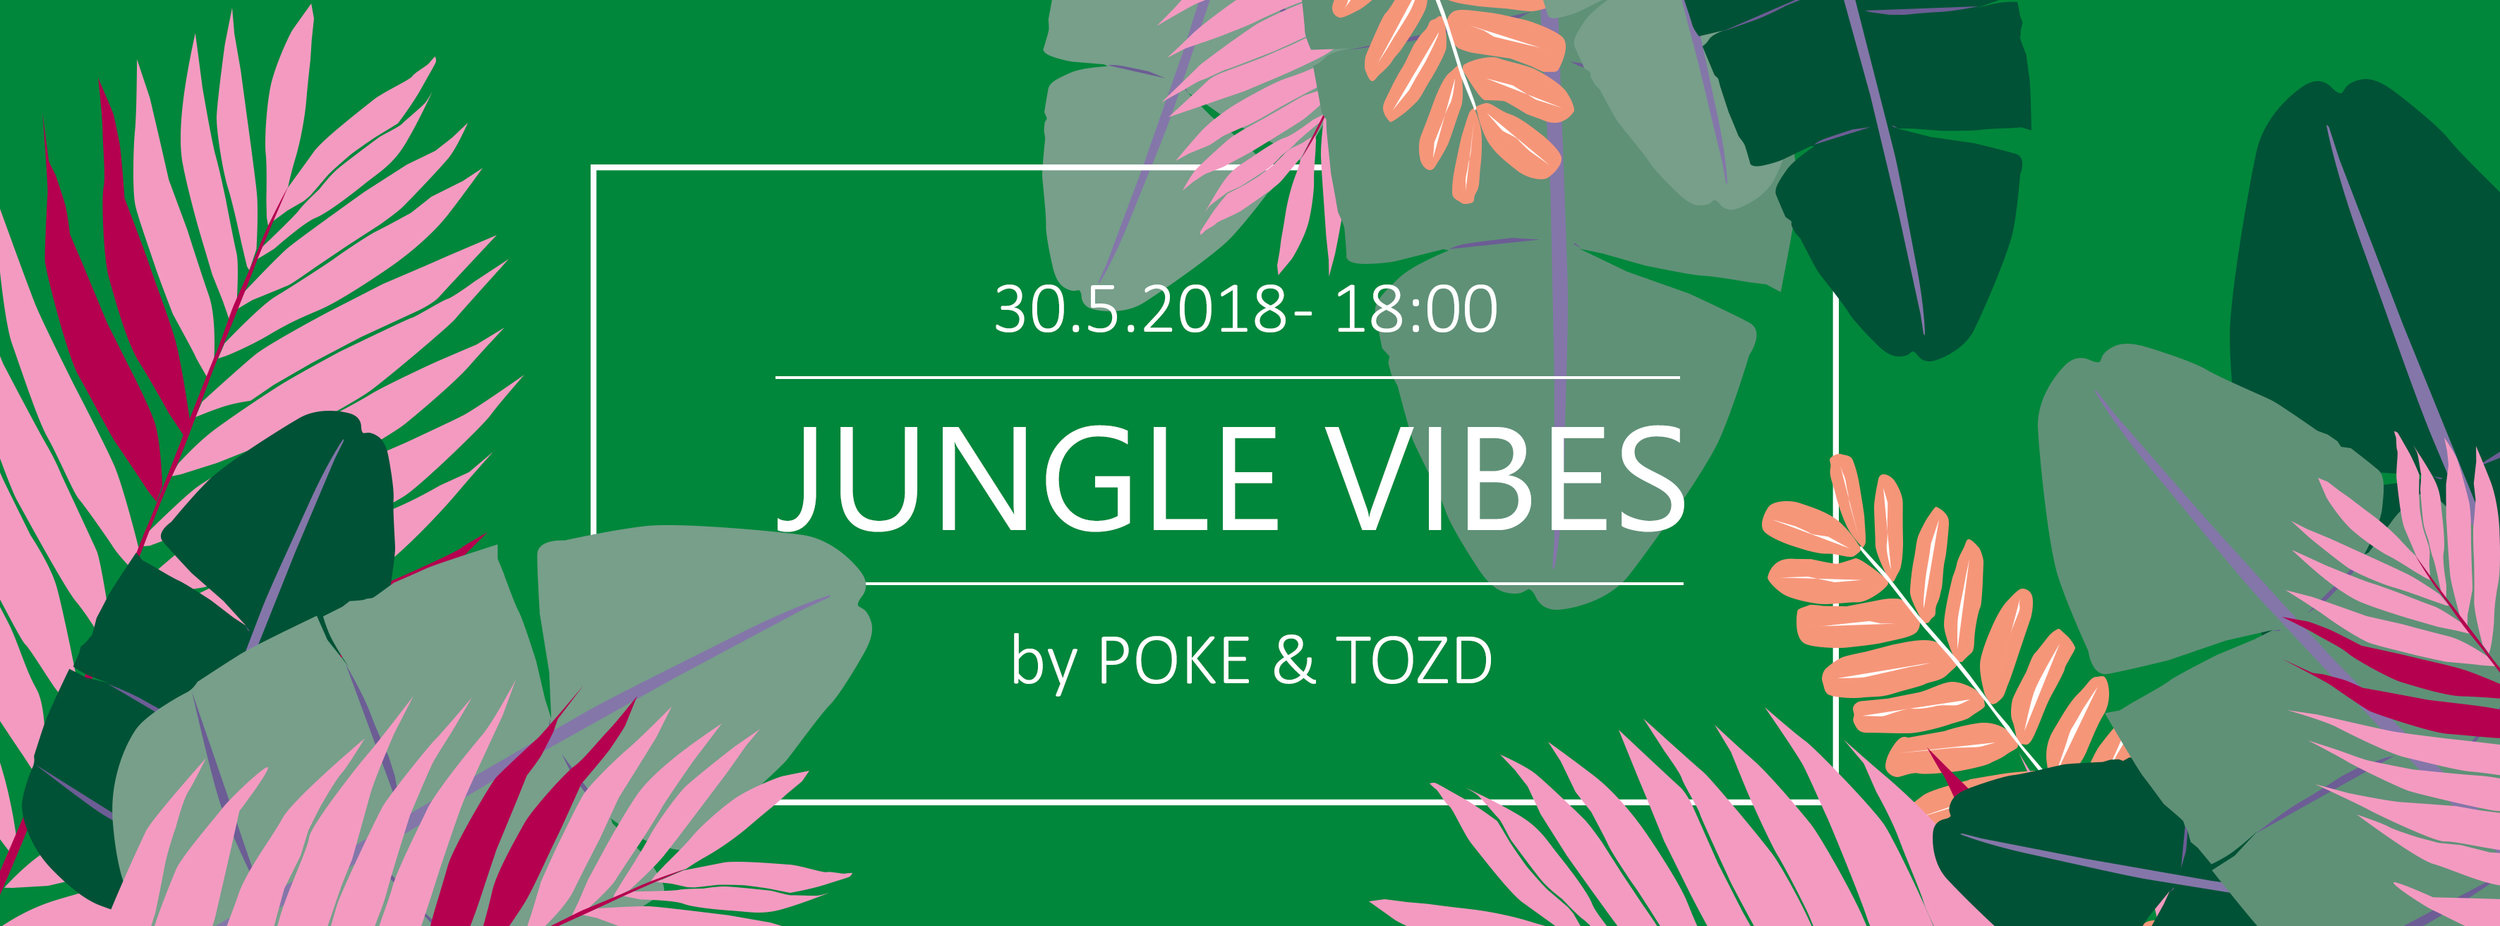 projekt poke studio_jungle vibes_grafična podoba